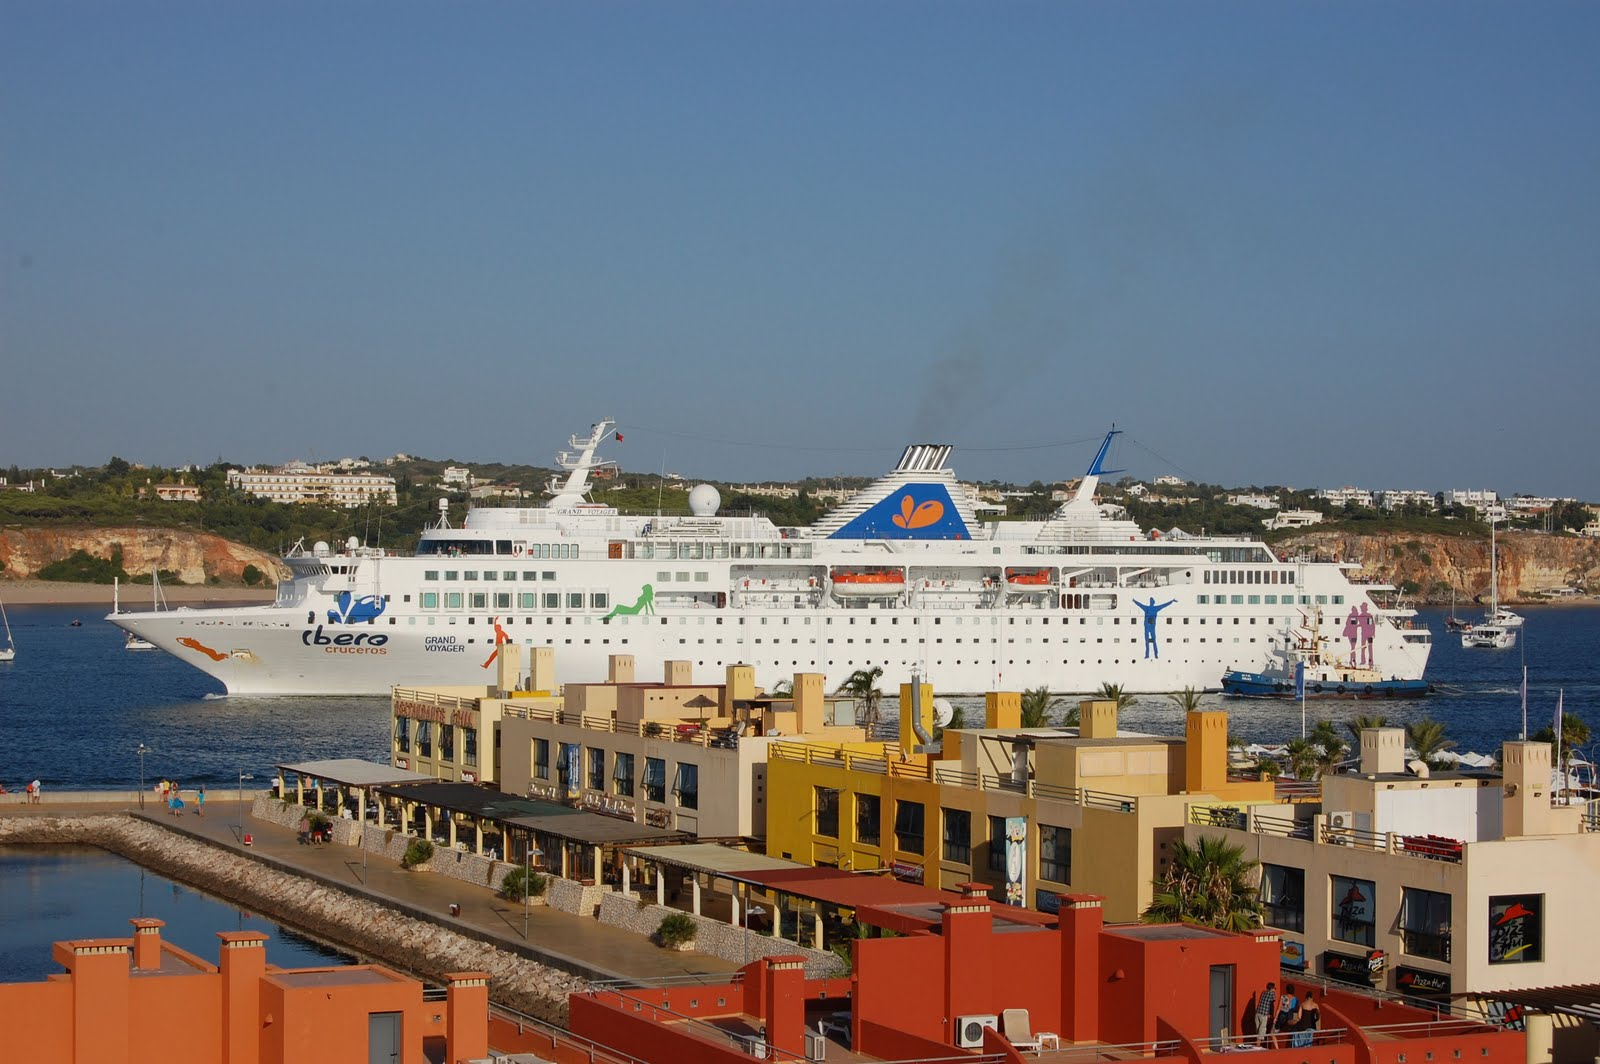 NAVIGATIONCruising And Maritime Themes CRUISE SHIPS AT PORTIMAO - Grand voyager cruise ship